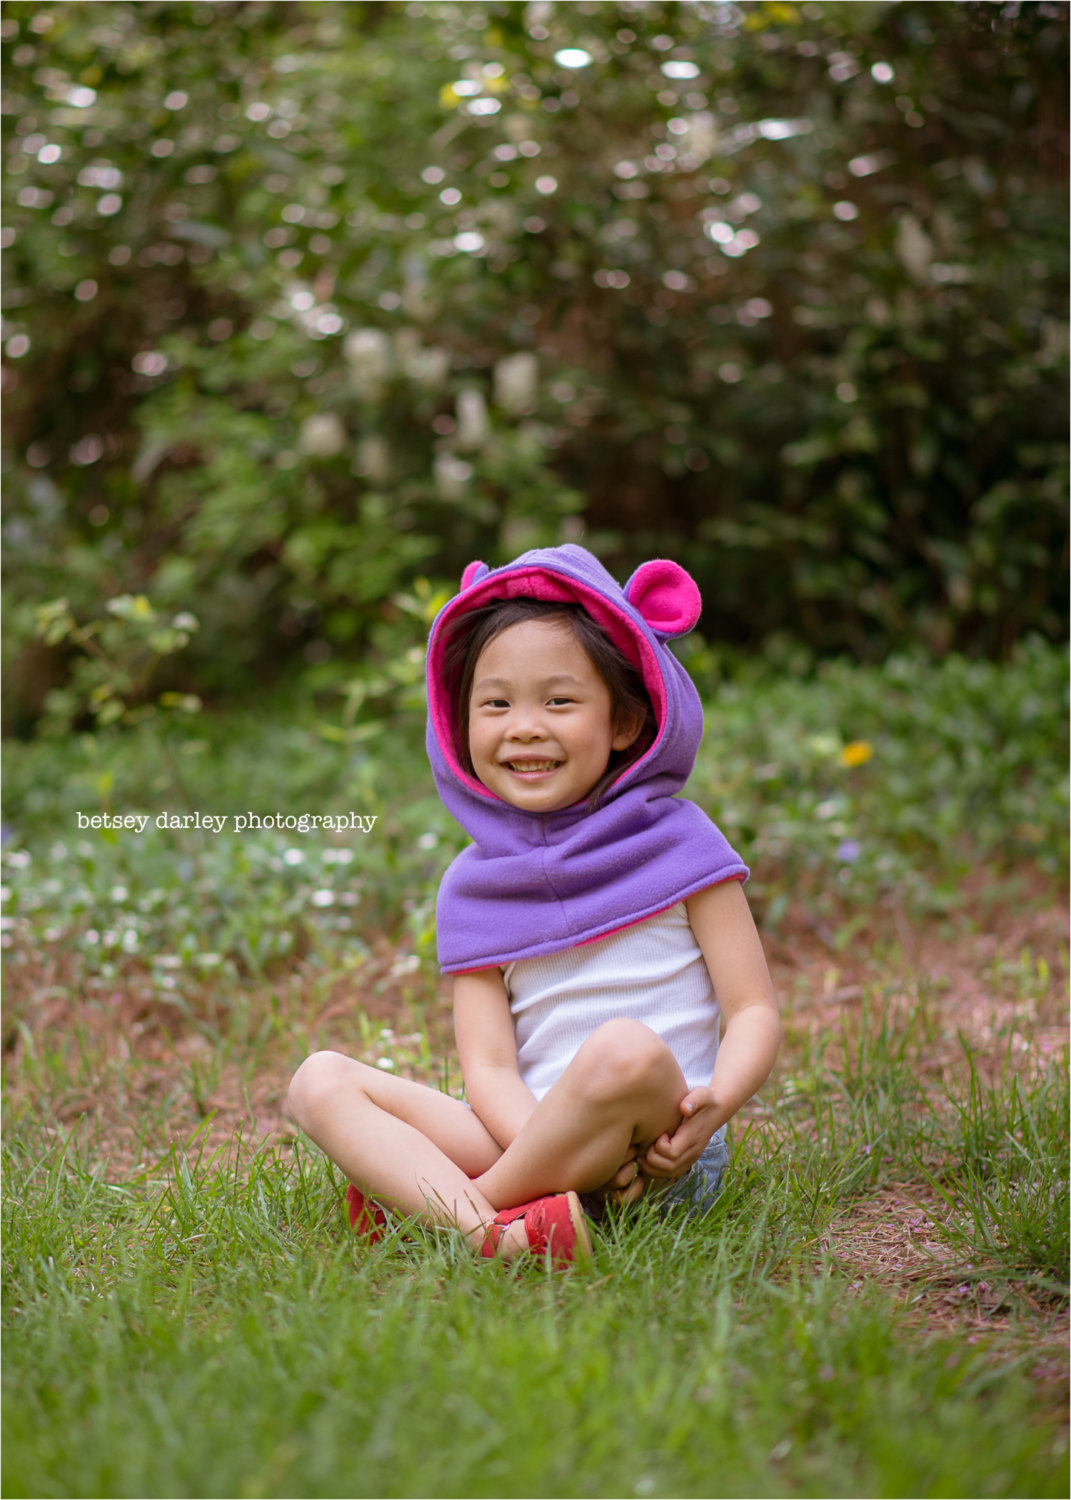 www.etsy.com/listing/232124392/toddlers-bear-hat-kids-costume-bear-hat?ref=shop_home_active_14